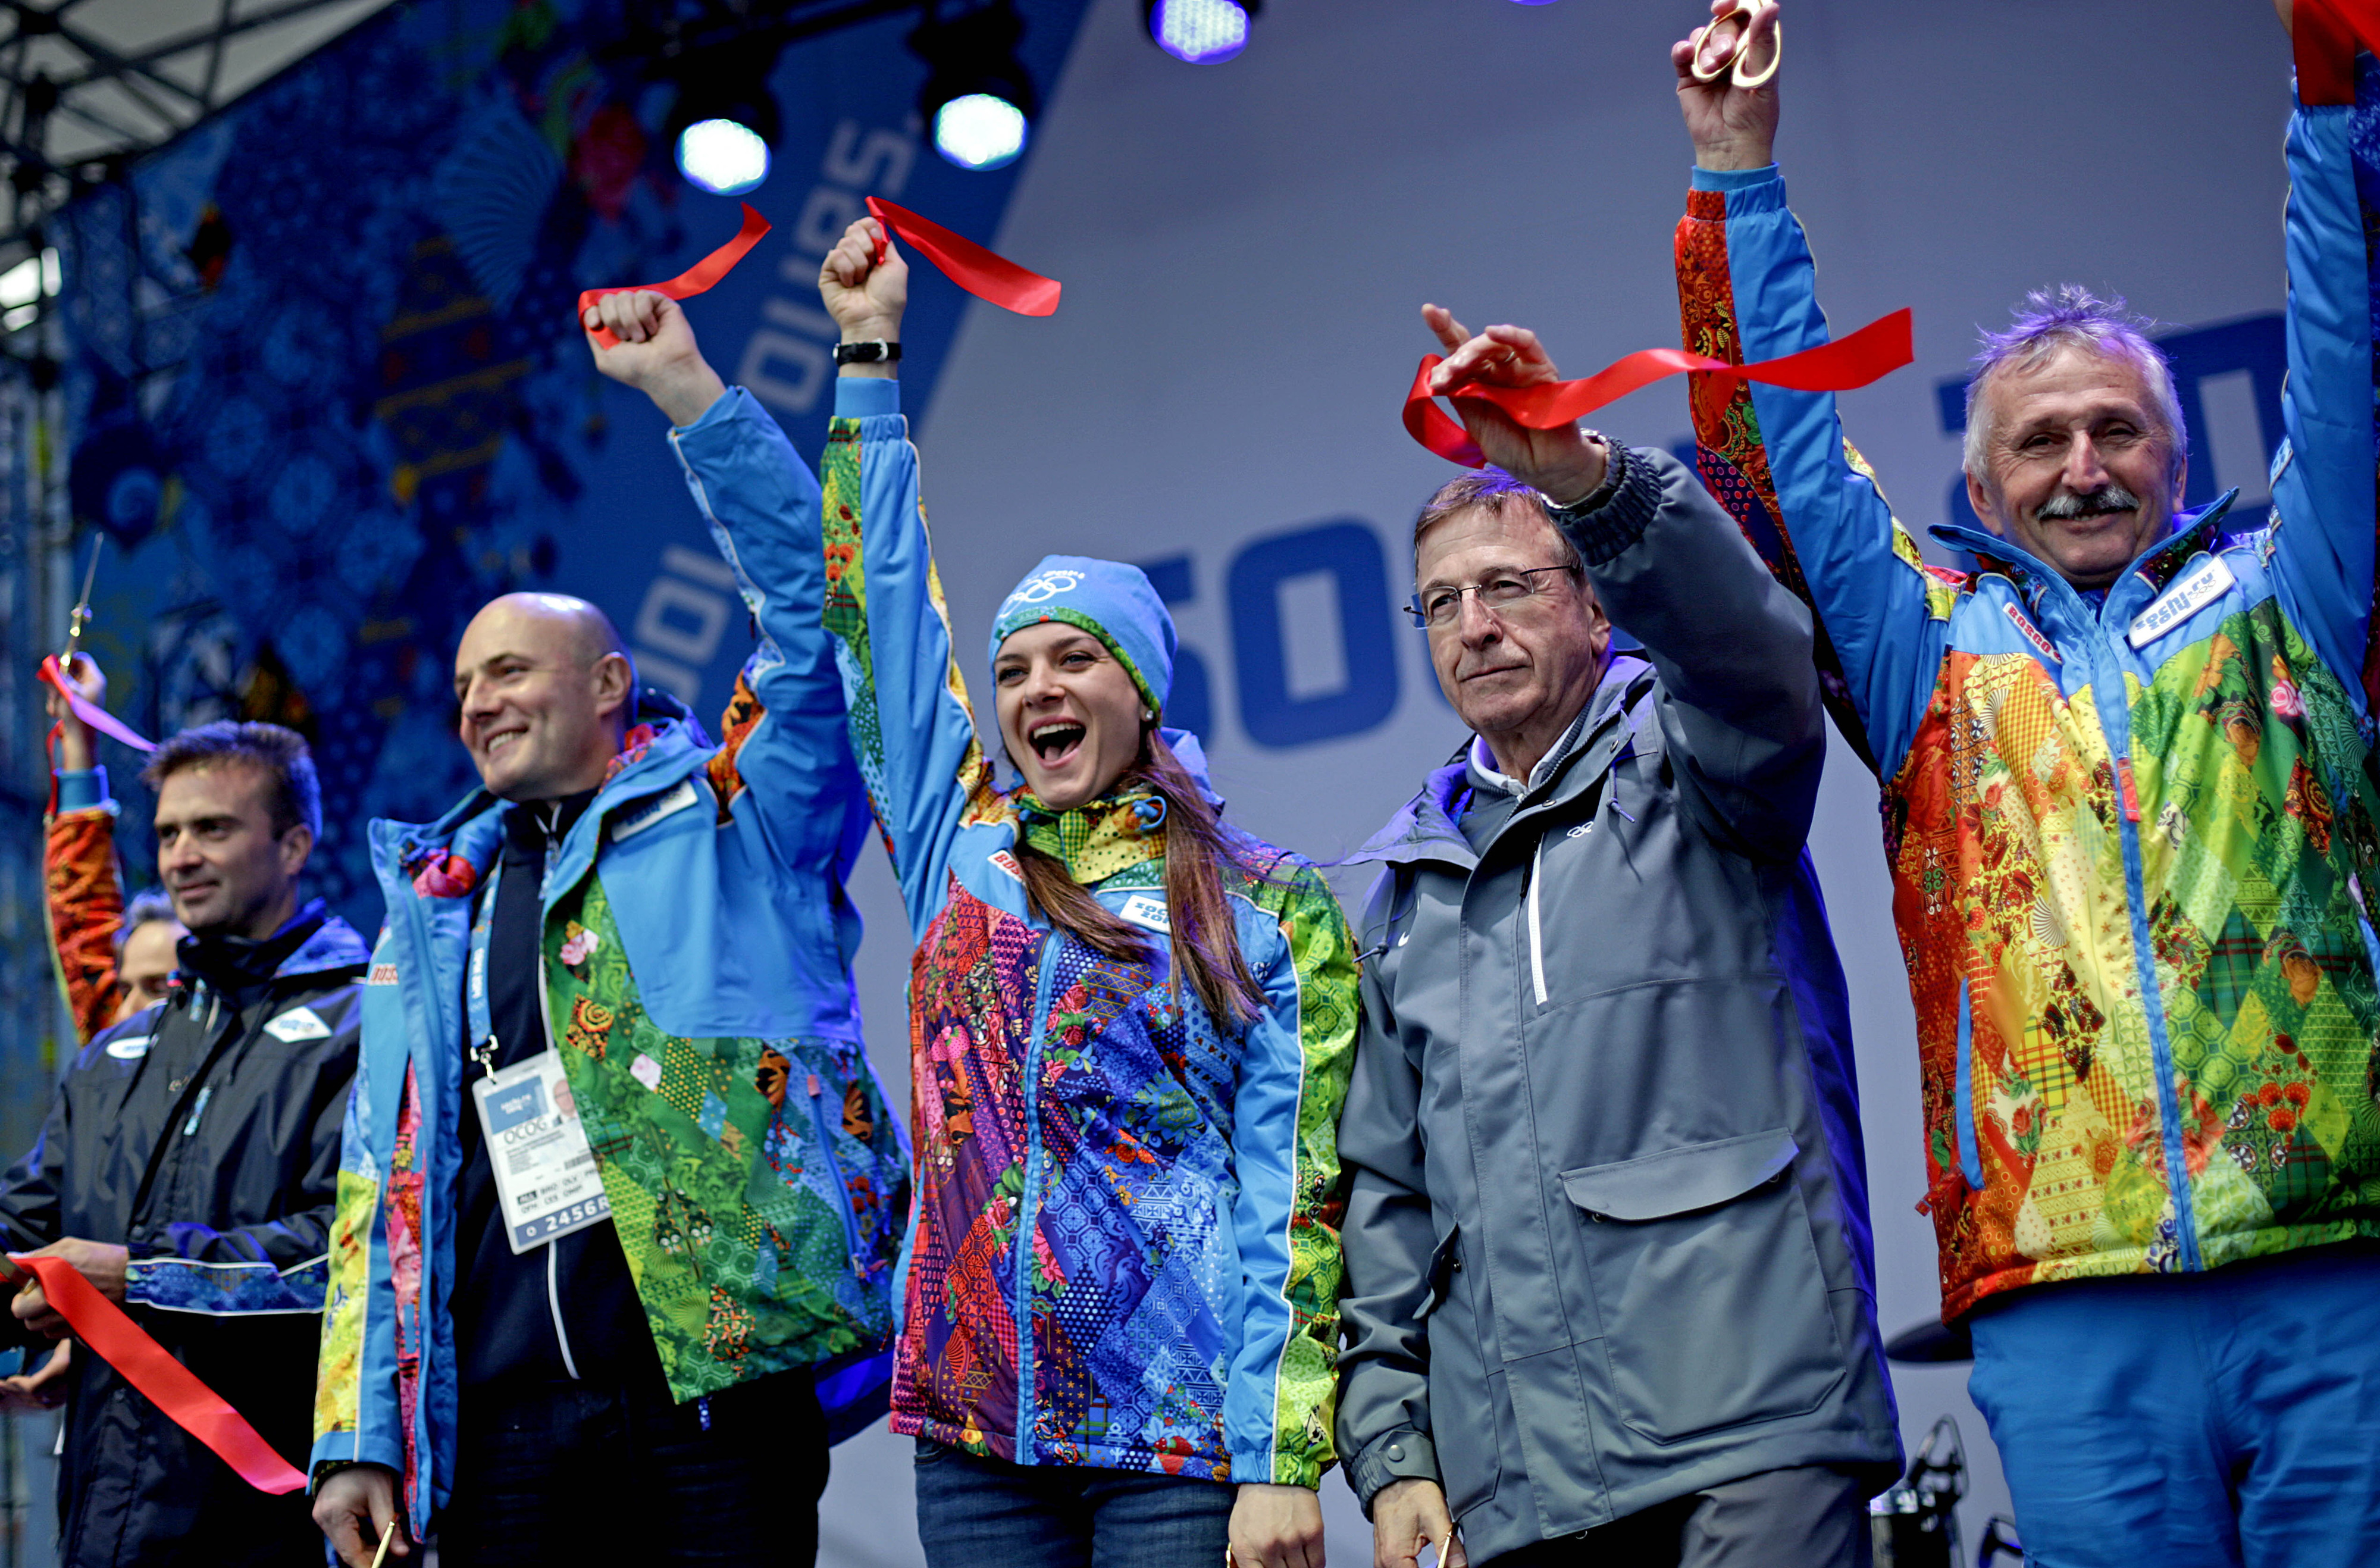 The ribbon was cut last week, but the Winter Olympics kickoff this Friday.